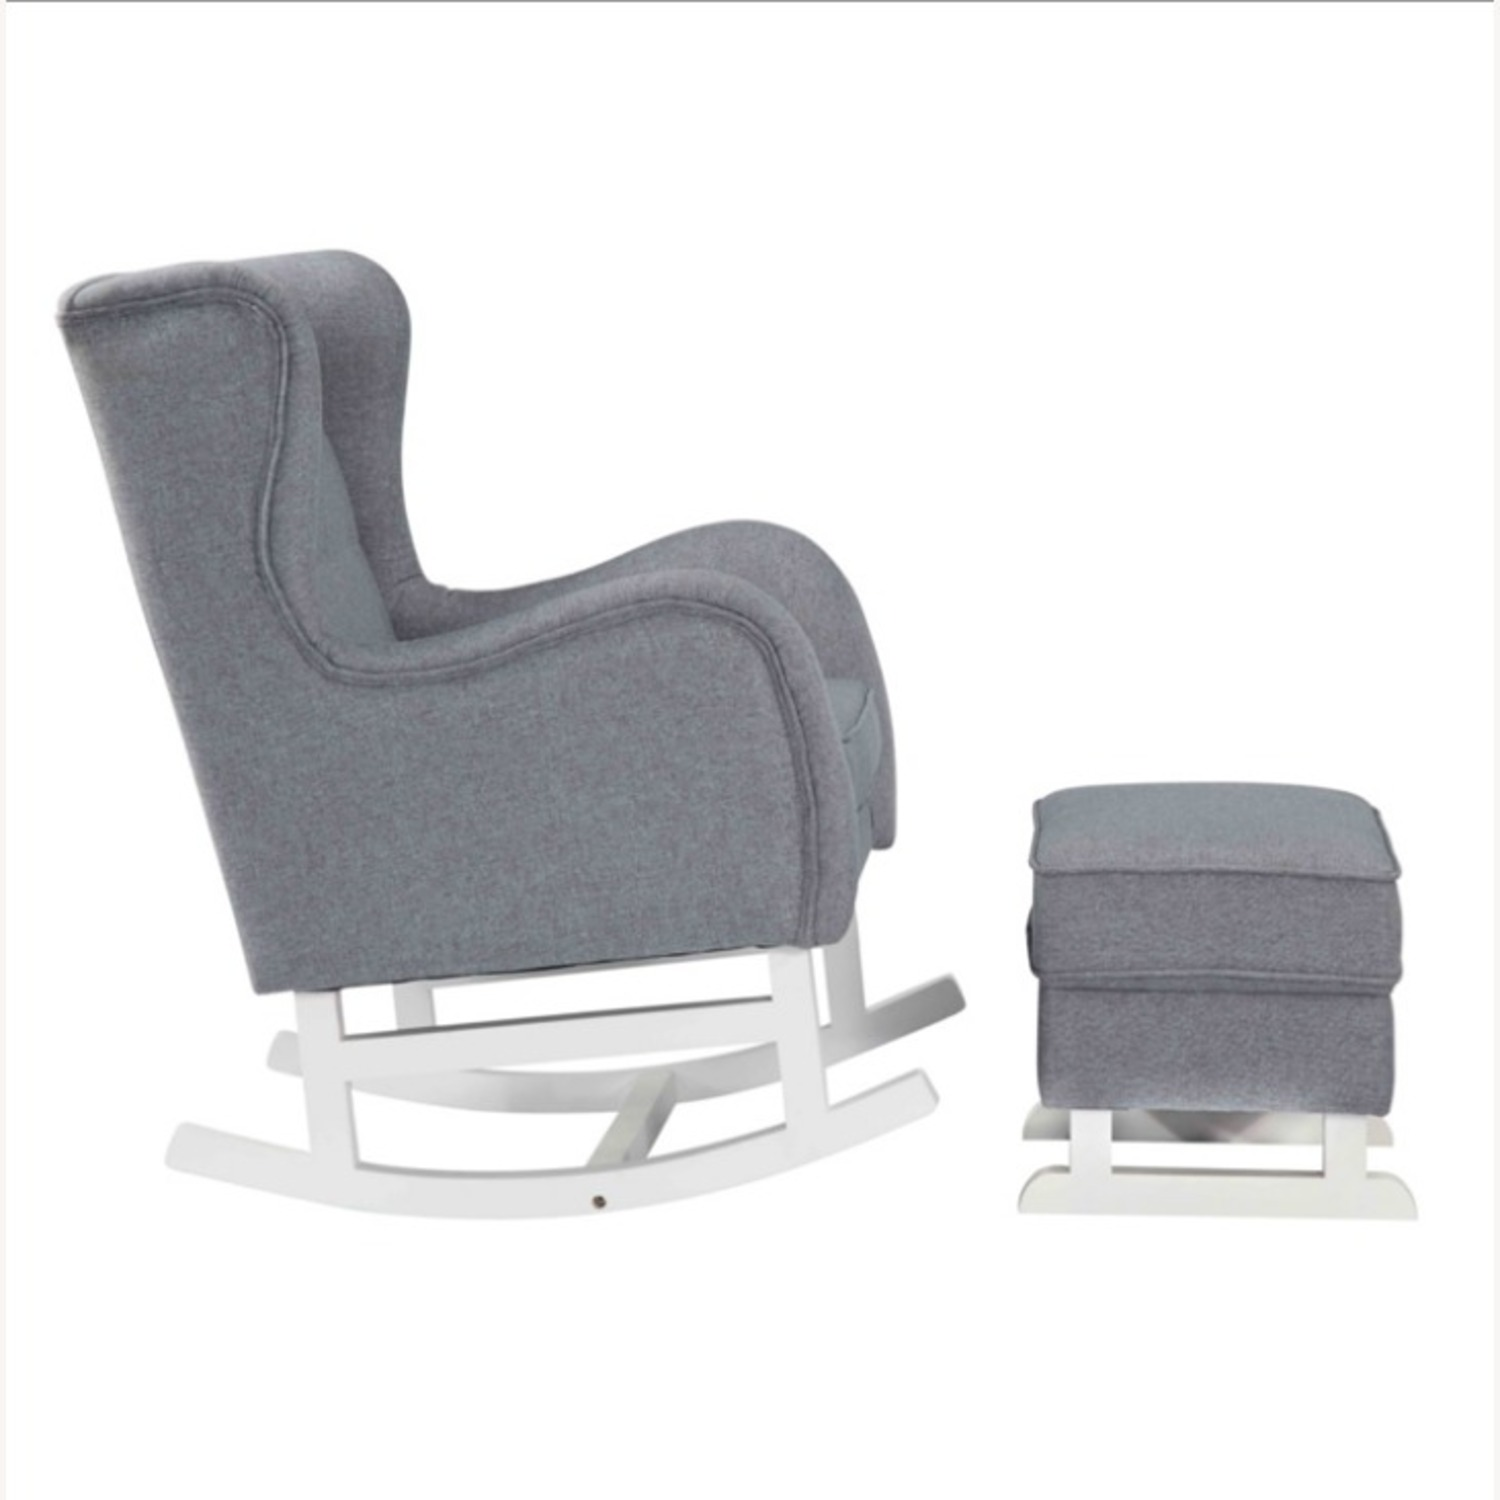 Baby Lounge Chair & Ottoman In Gray Fabric - image-1